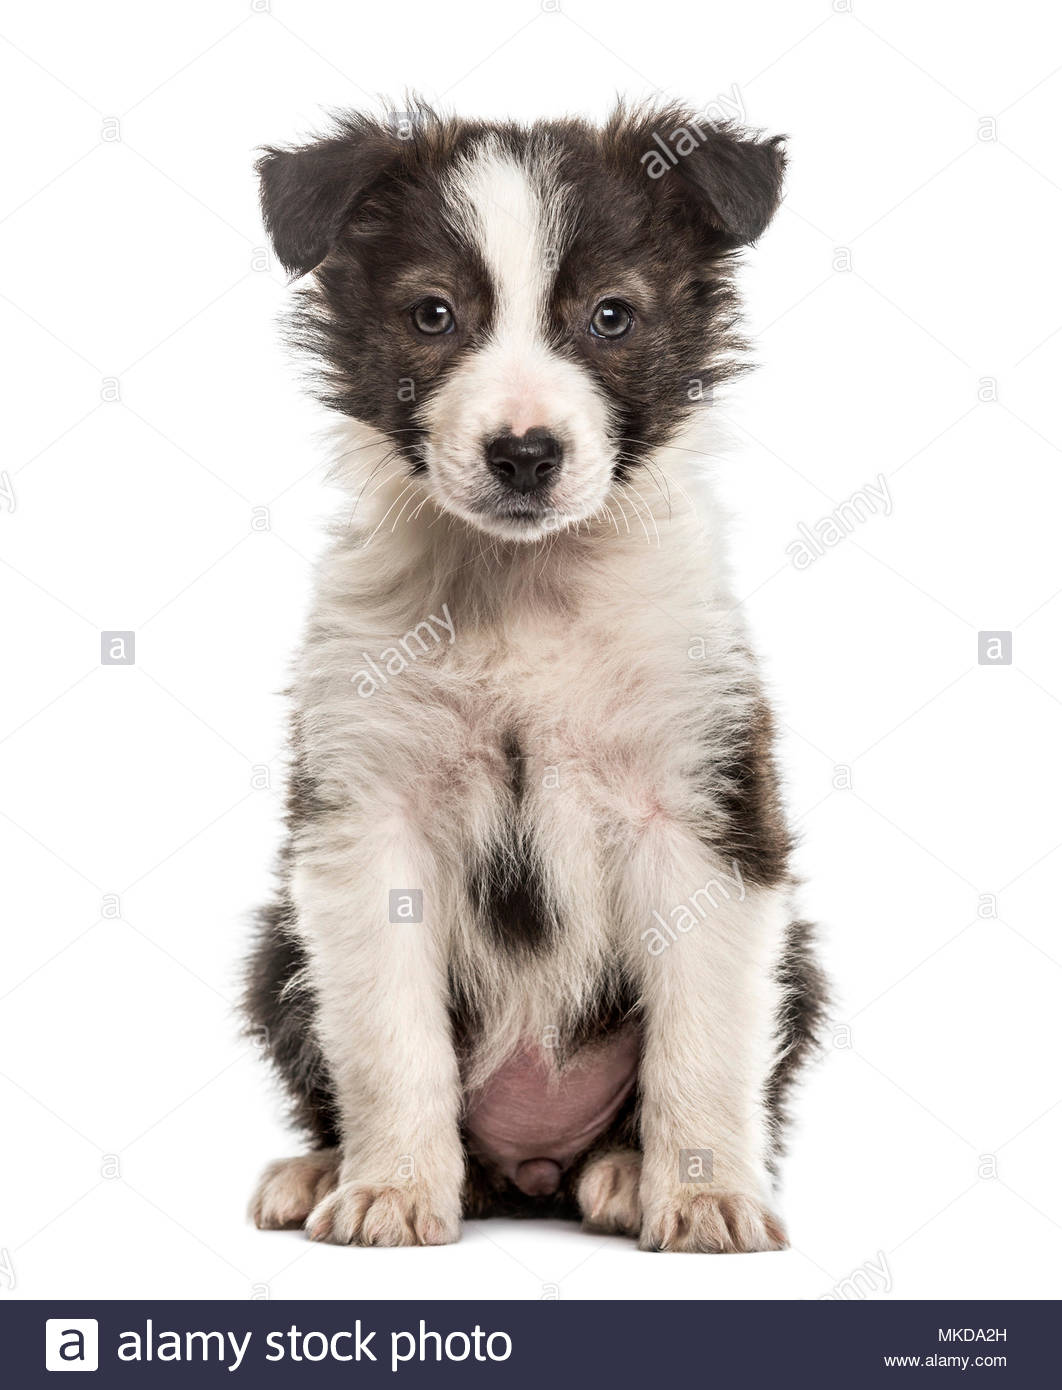 Border Collie puppy sitting, isolated on white background - Stock Image